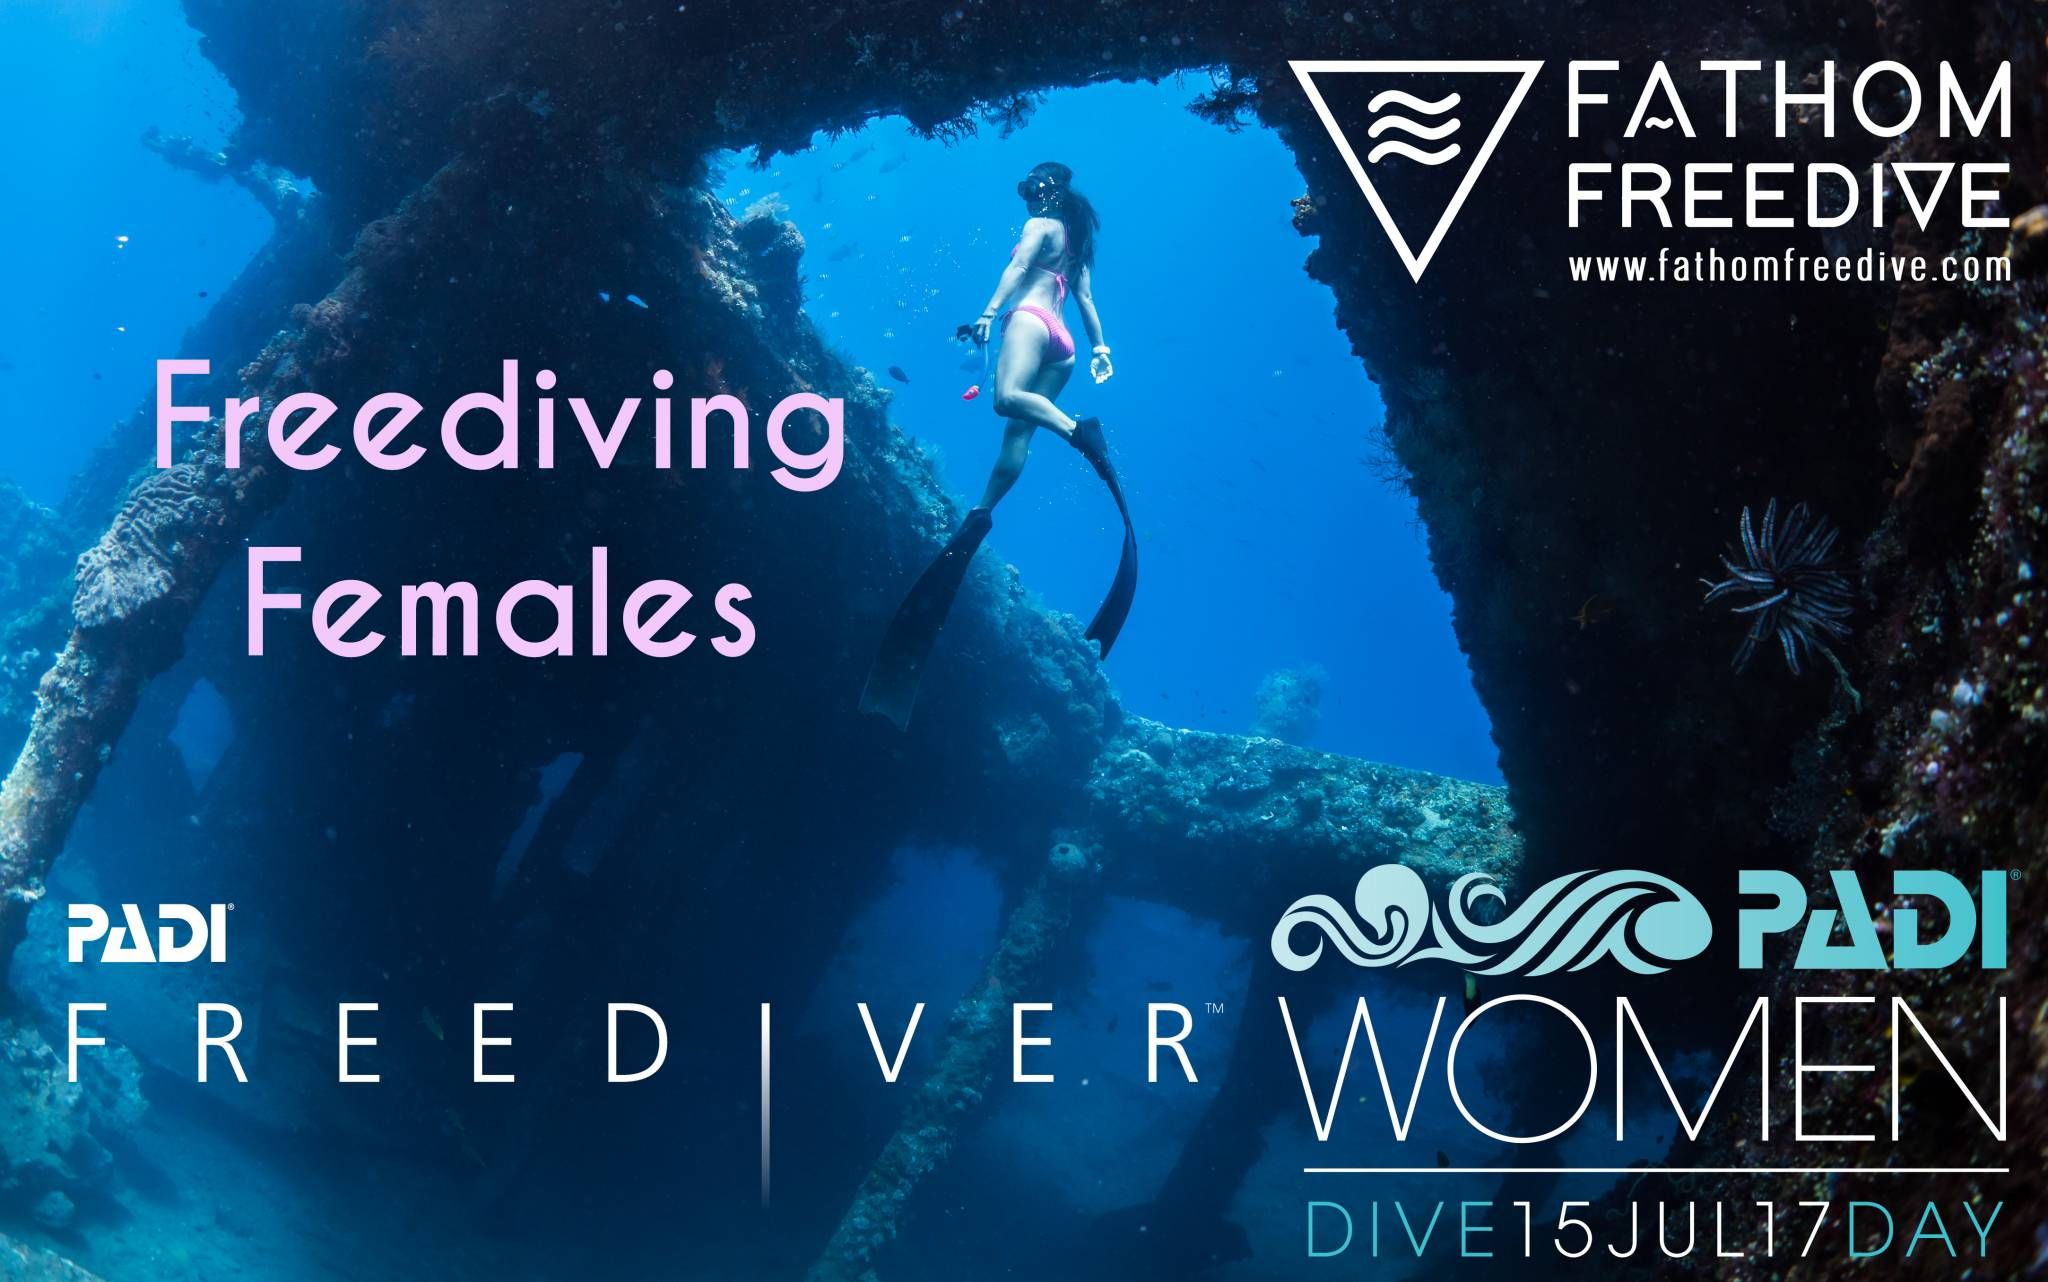 Freediving Bali, padi freediving, underwater photography, mermaid